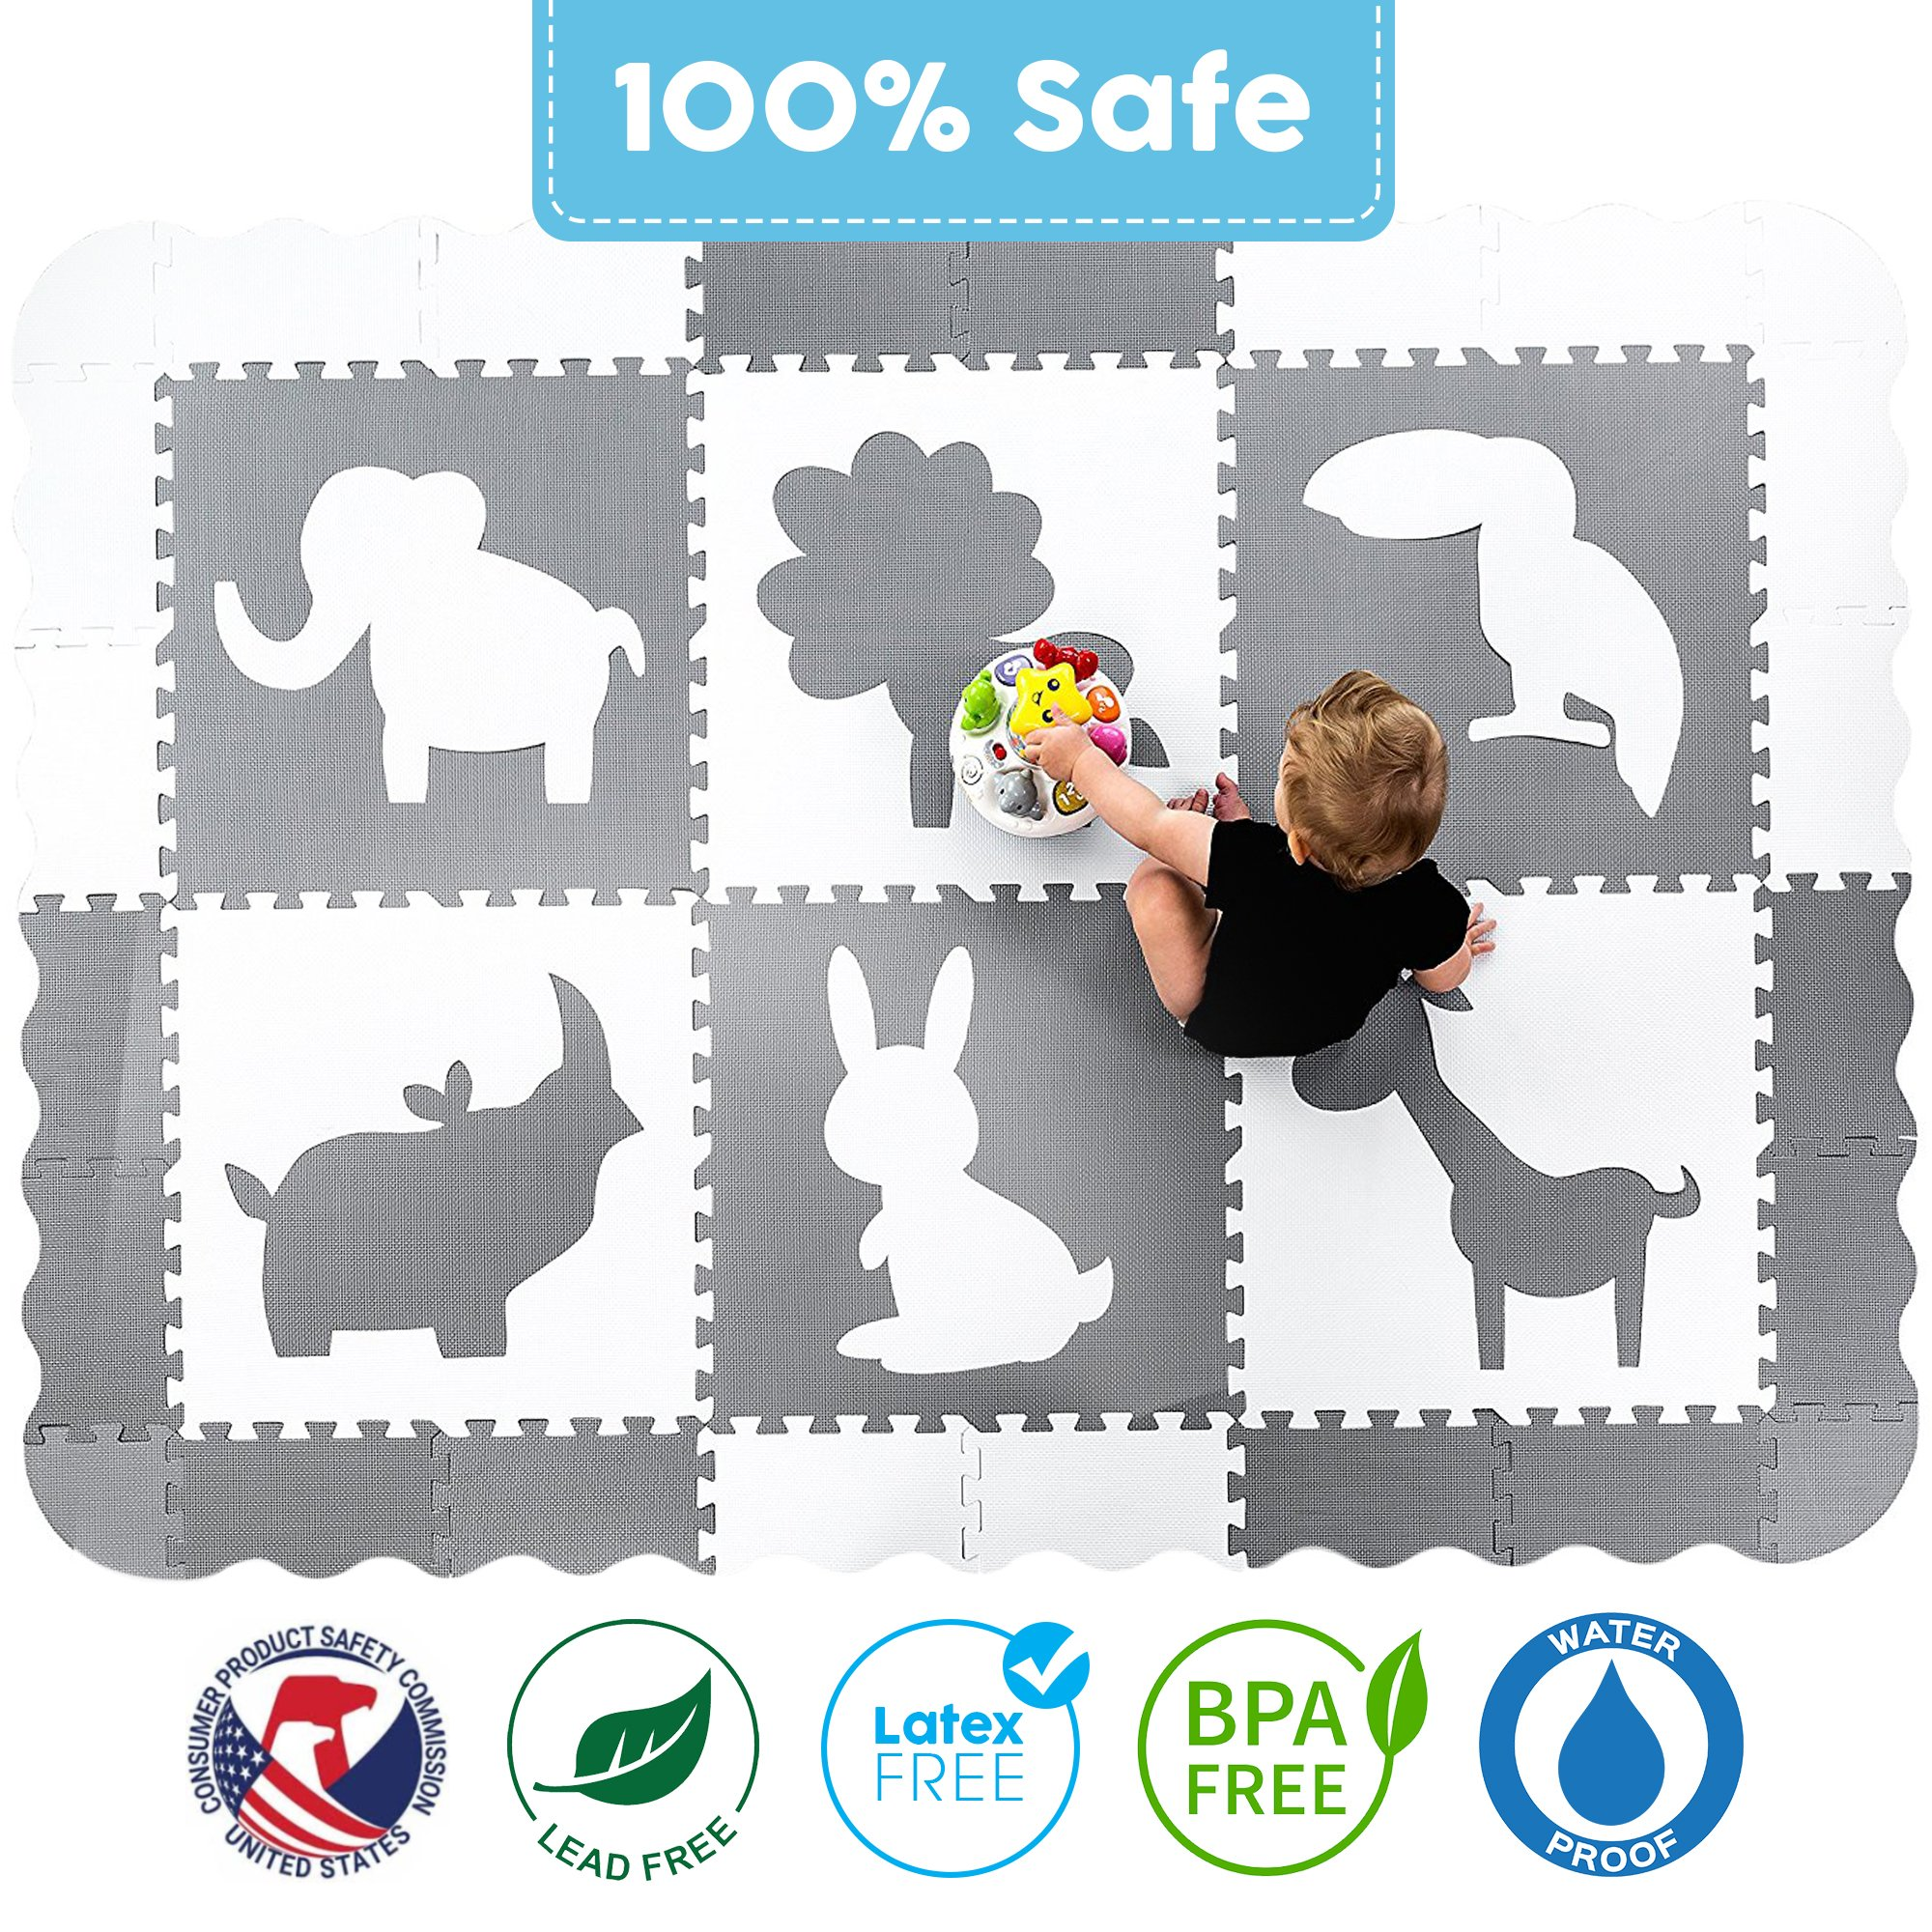 Large (5x7') Baby Play Mat with Interlocking Foam Floor Tiles. Neutral, Non Toxic Baby Playmat for Nursery, Playroom or Living Room (Grey and White) by Wee Giggles (Image #3)